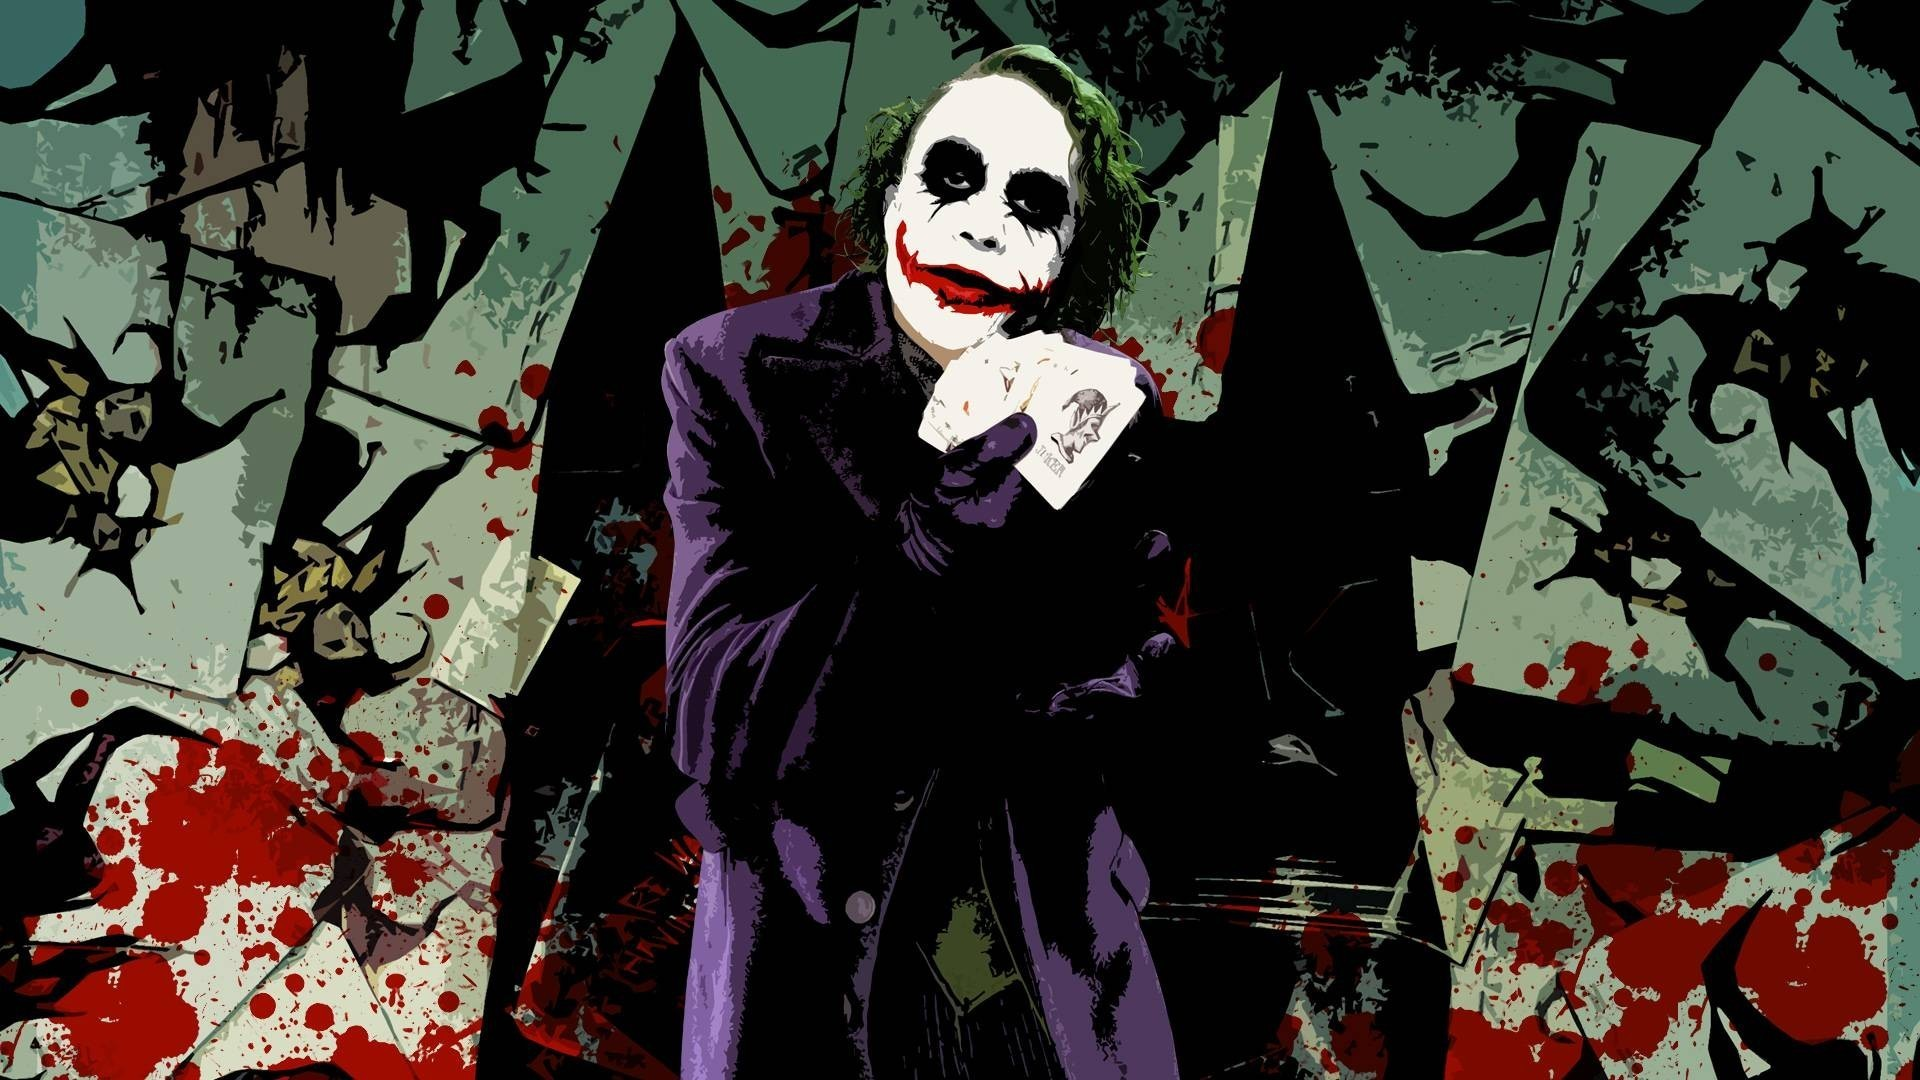 Hd Wallpapers Phone Wallpaper Heath Ledger Joker Dark Knight Movie 1920x1080